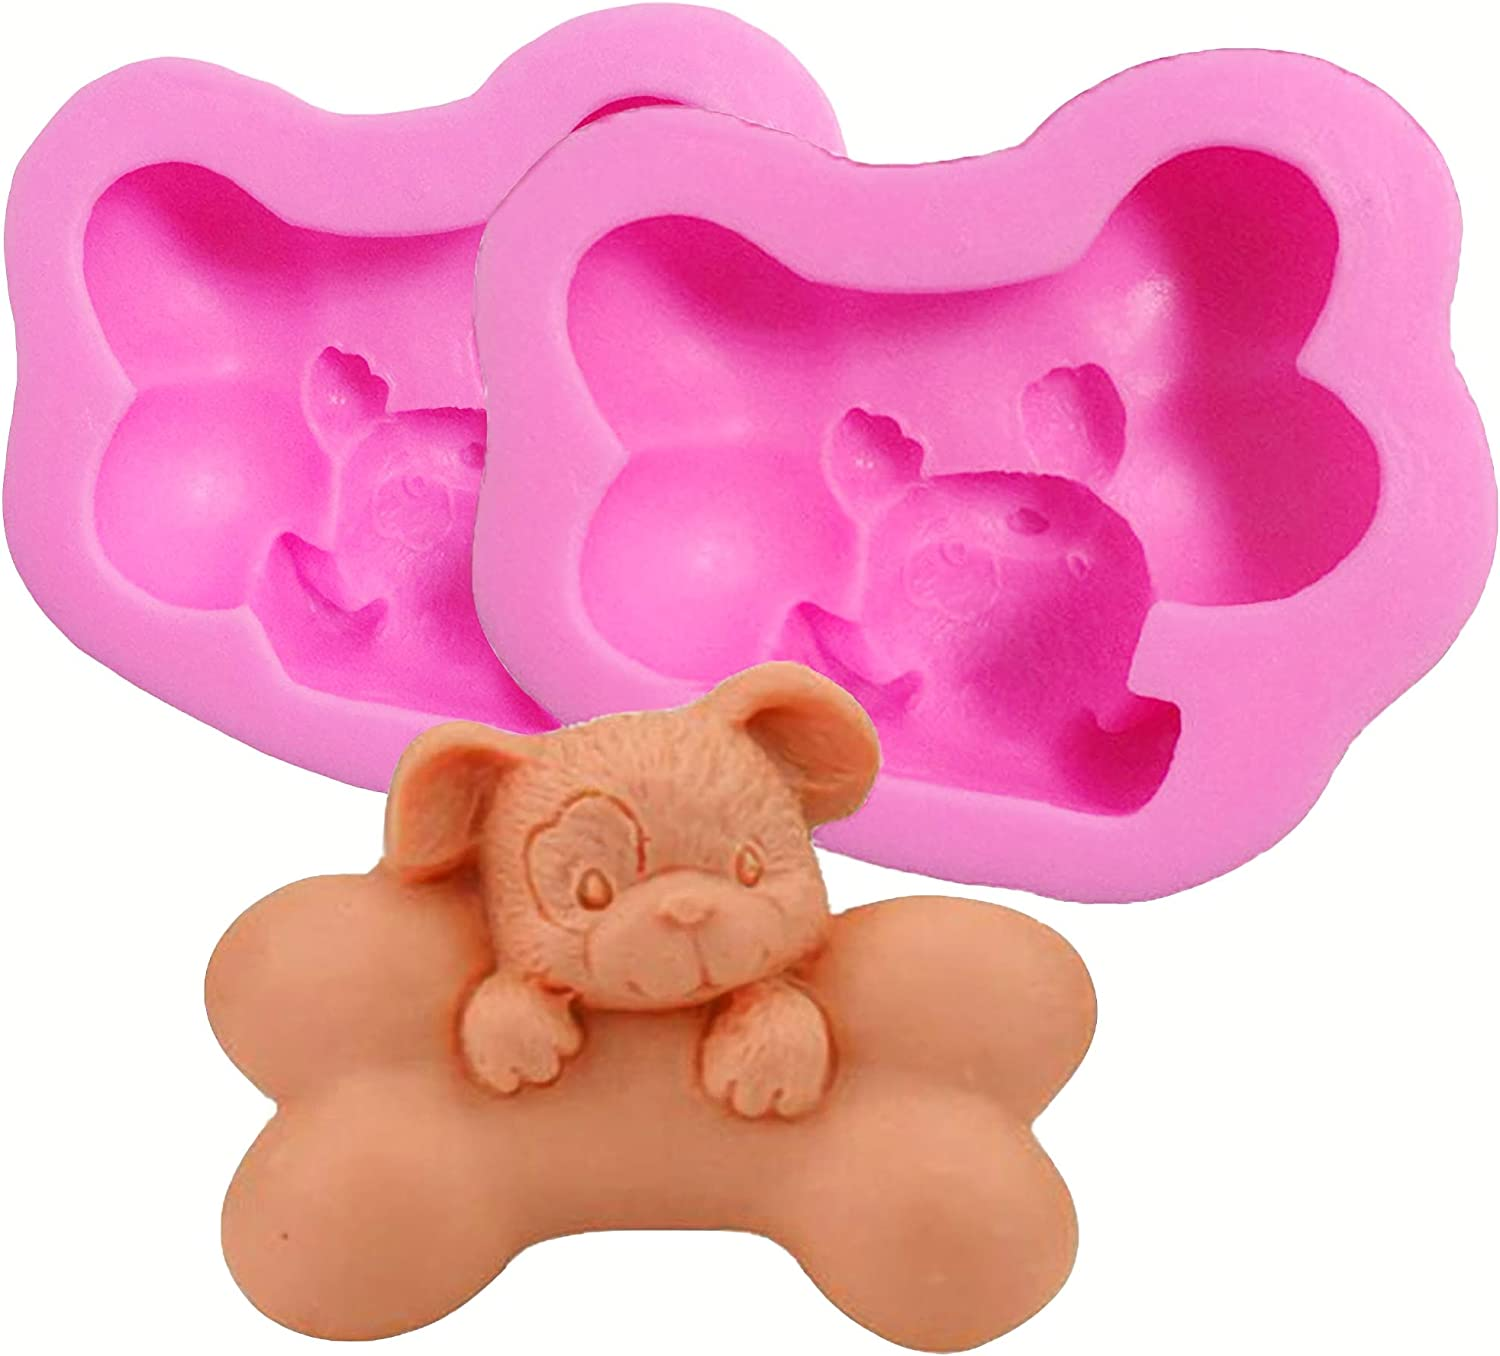 HengKe 2 Pieces 3D Puppy With Big Bone Molds Cute Puppy Soap Molds,Food Grade Cake Molds Chocolate Icing,Biscuit Decor,Polymer Clay Fondant Cake Dog Molds Cake Baking Moulds Dog Molds